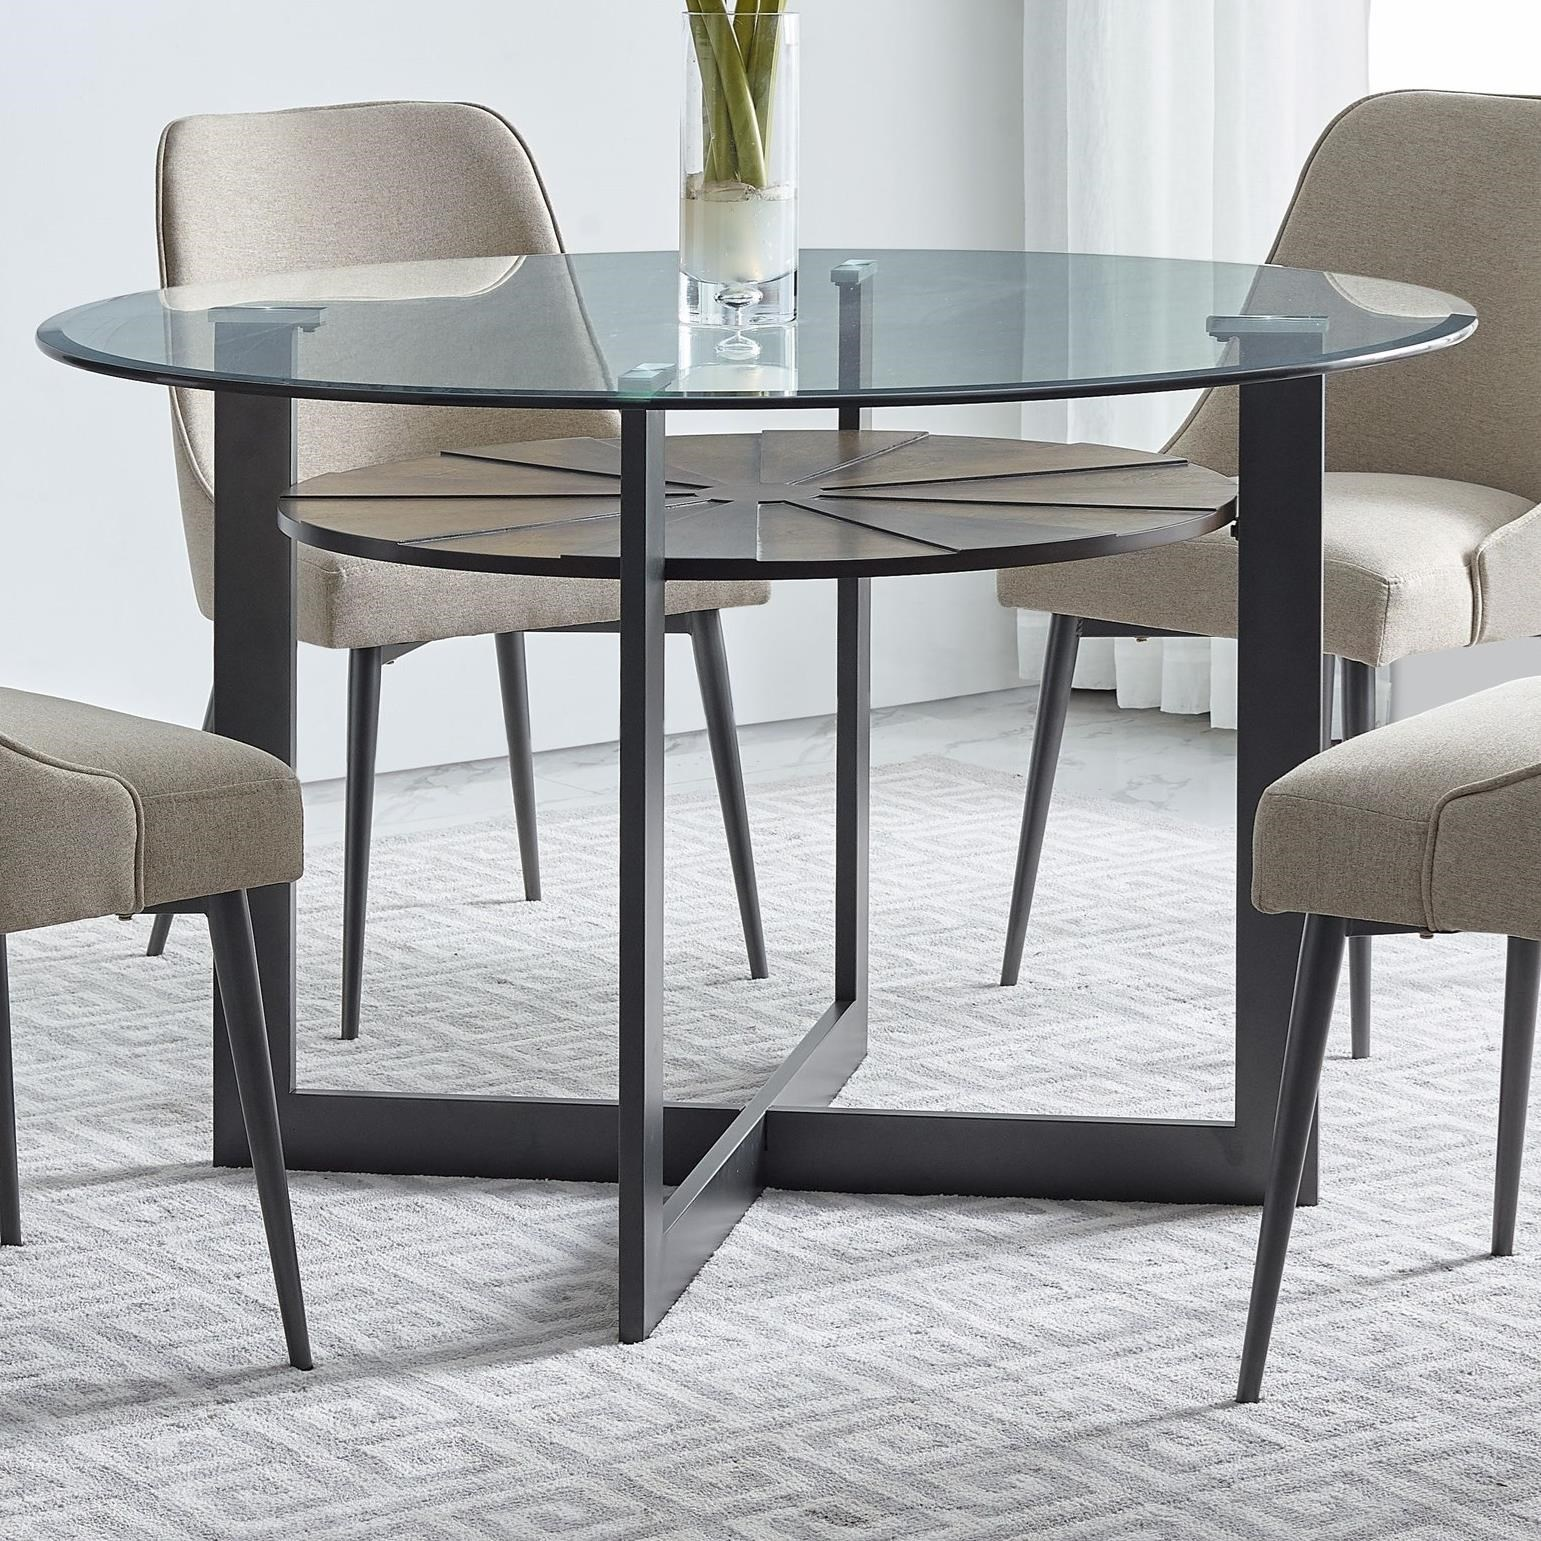 Contemporary Round Glass Dining Table with Iron and Birch Base